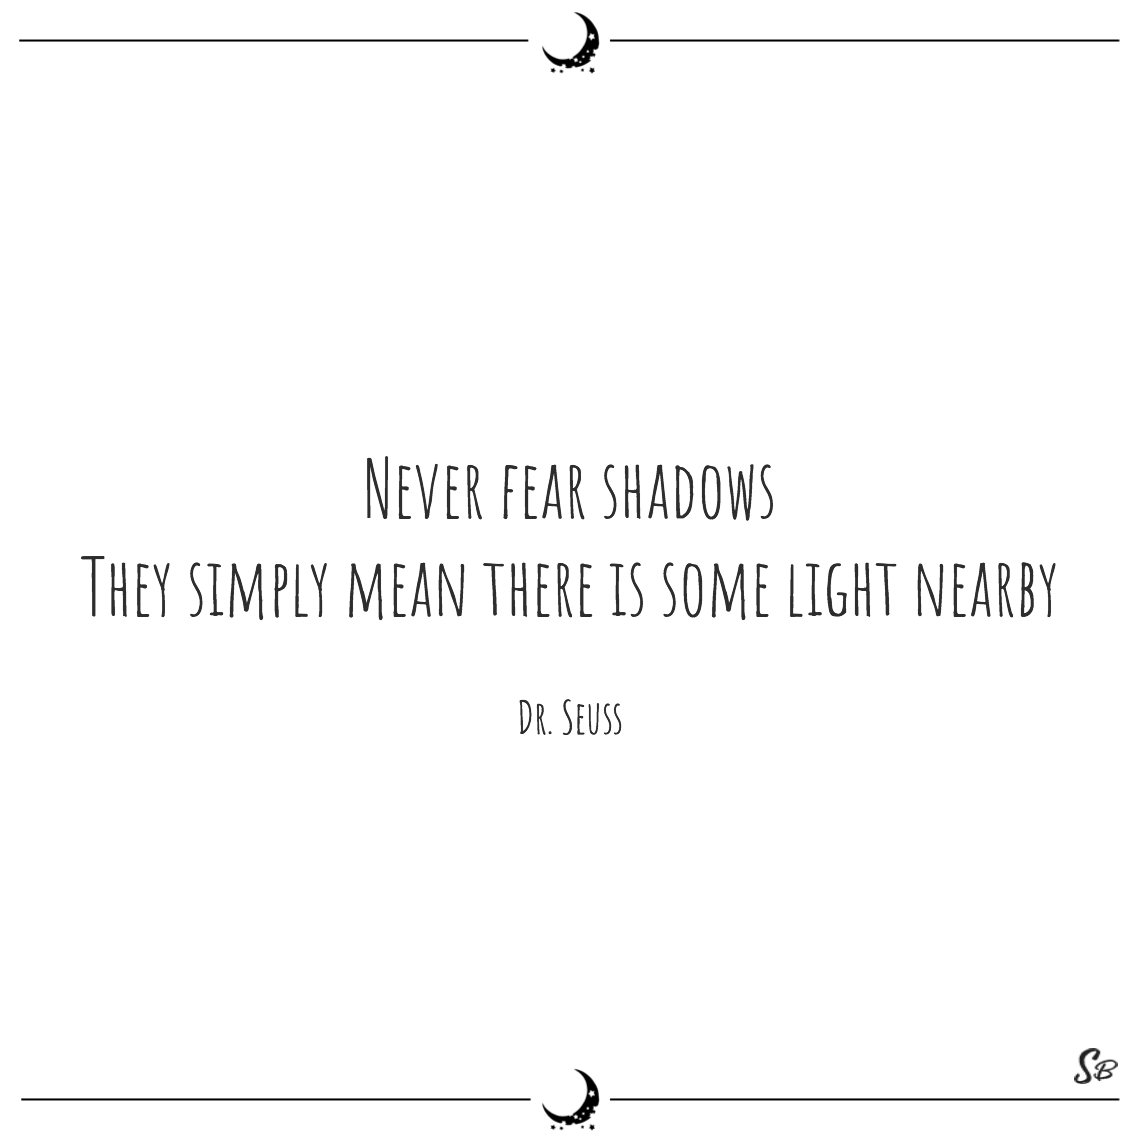 Never fear shadows they simply mean there is some light nearby dr. seuss